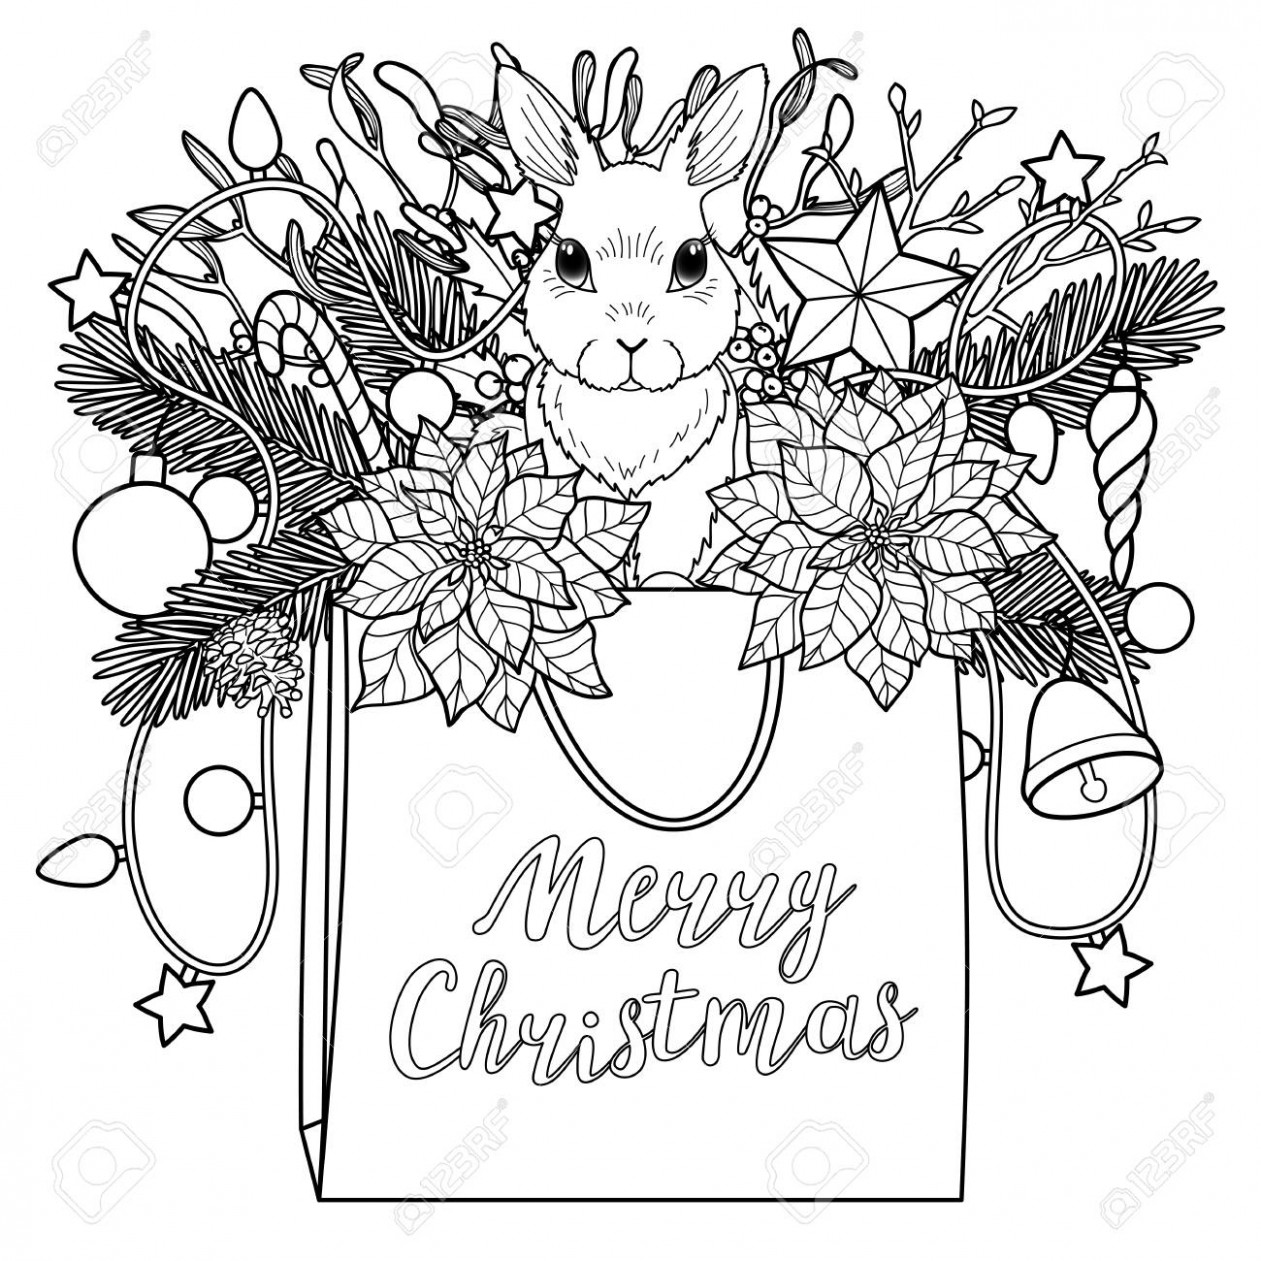 Merry Christmas Coloring Greeting Composition. Square Black And ...